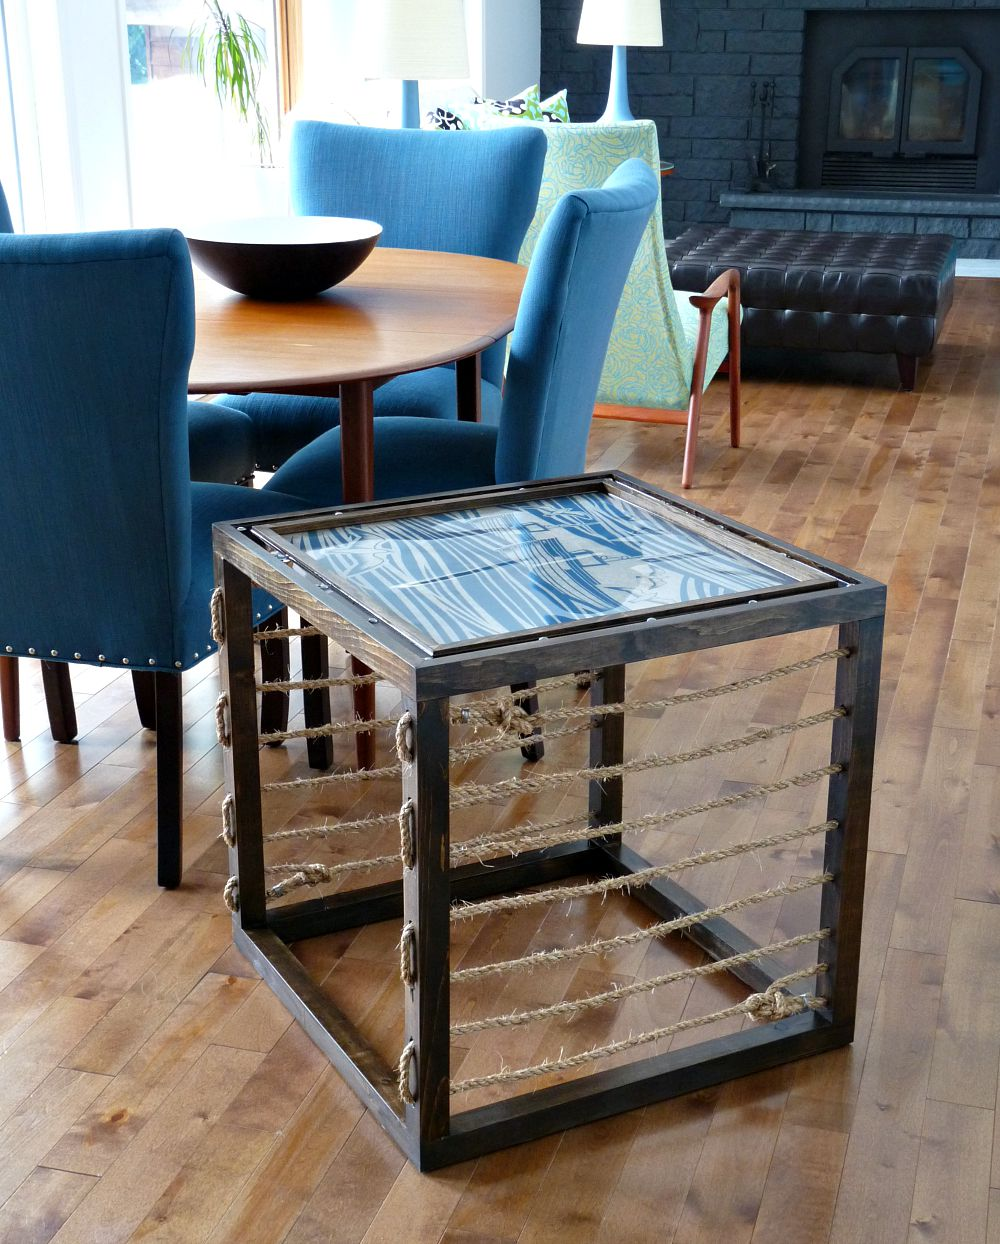 diy nautical accent table dans lakehouse rustoleum after furniture toronto loveyourwood contest pendant lighting slim glass side square mirror little with drawers rustic chairside